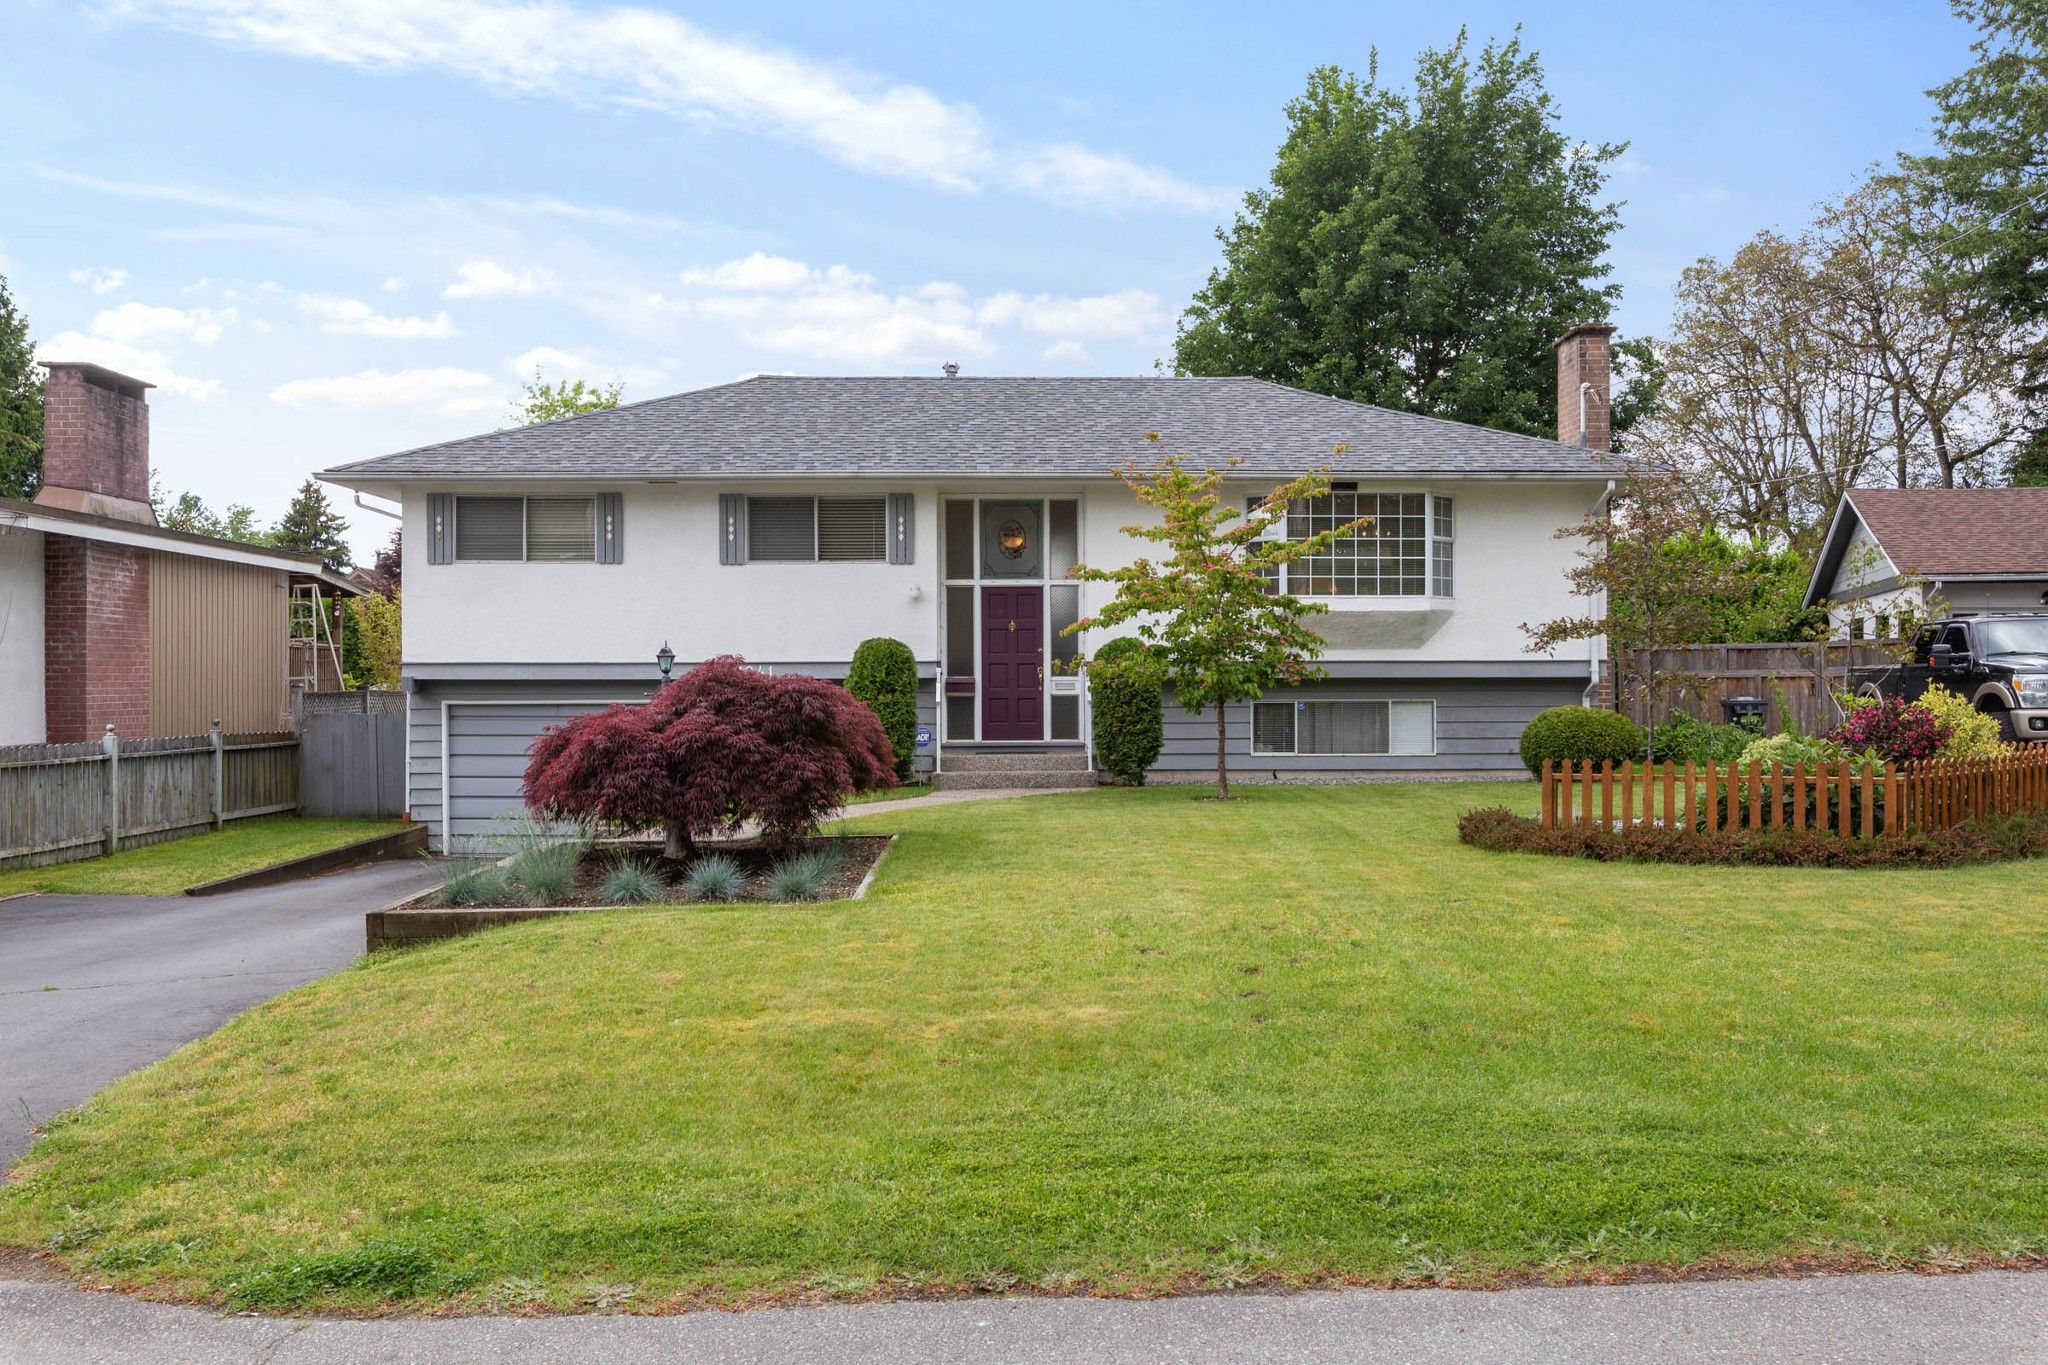 Main Photo: 11941 EVANS Street in Maple Ridge: West Central House for sale : MLS®# R2586792